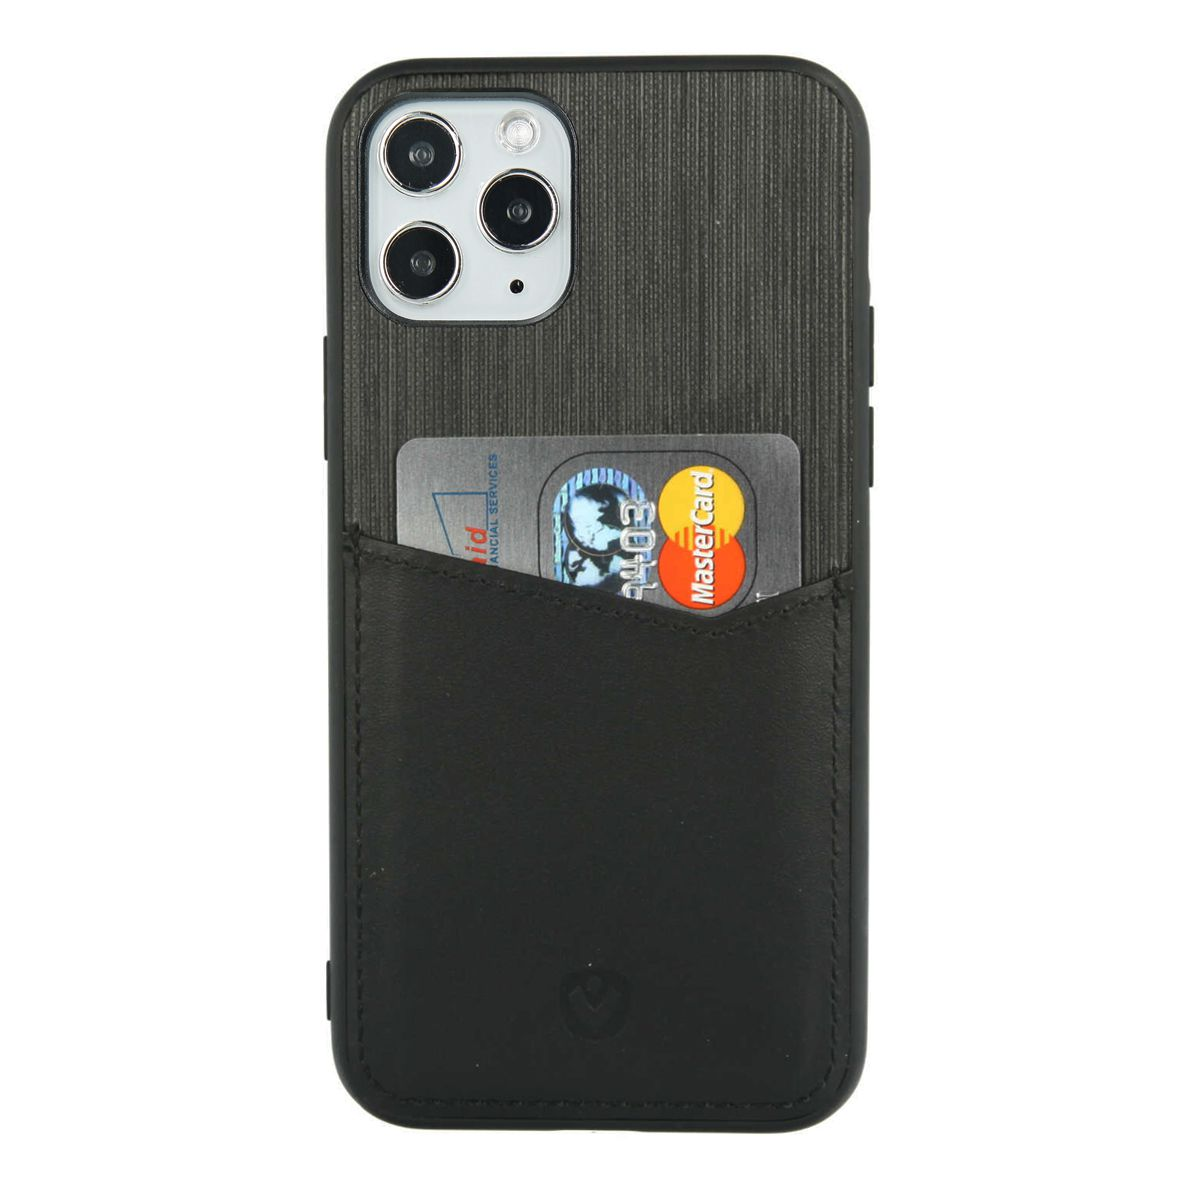 back cover zwart card slot iphone 11 pro max